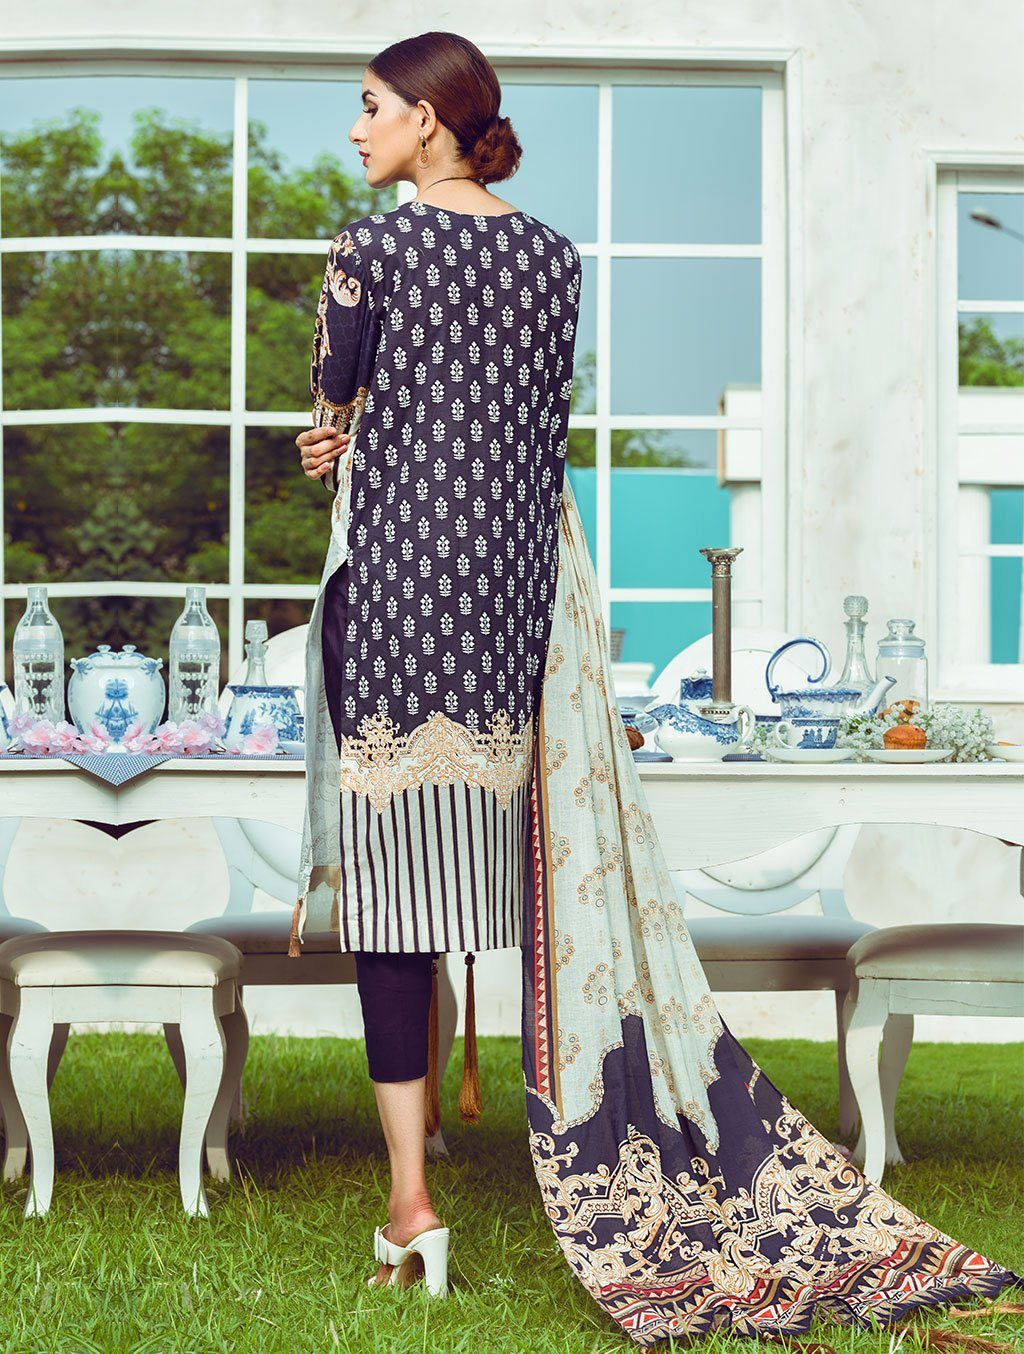 3 Piece Unstitched Printed Lawn Suit KL-4125 Khas Lawn 2021 - Volume 1 FASUNSLAD